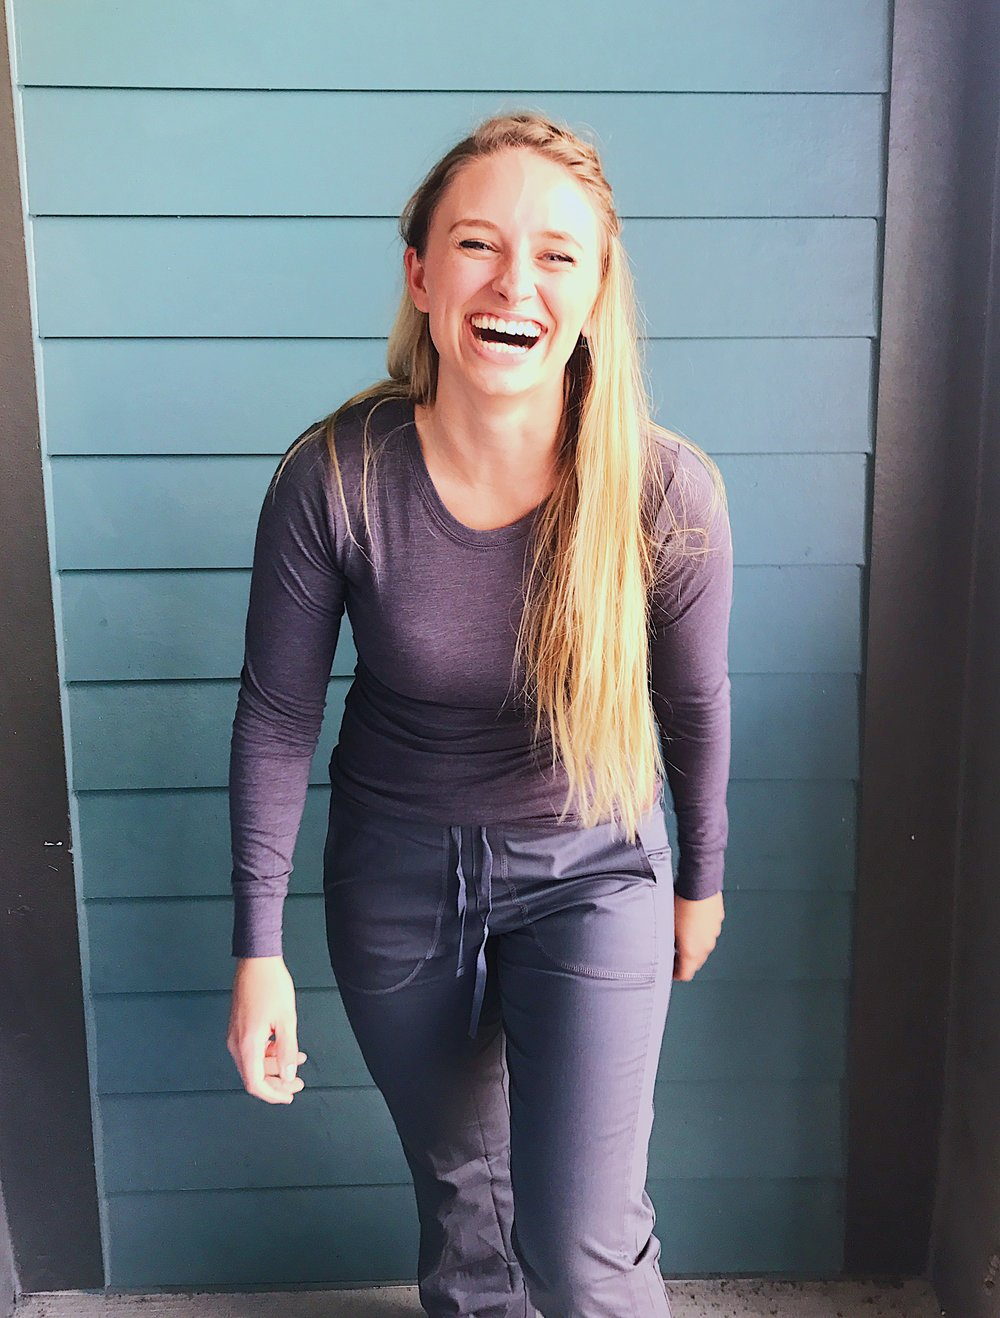 #allheartSquad: @tiffanyjoy8 - Behind the scenes with #allheartSquad member @tiffanyjoy. Tiffany is wearing Ascent Women's Long Sleeve Knit Underscrub T-Shirt in Charcoal Heather.